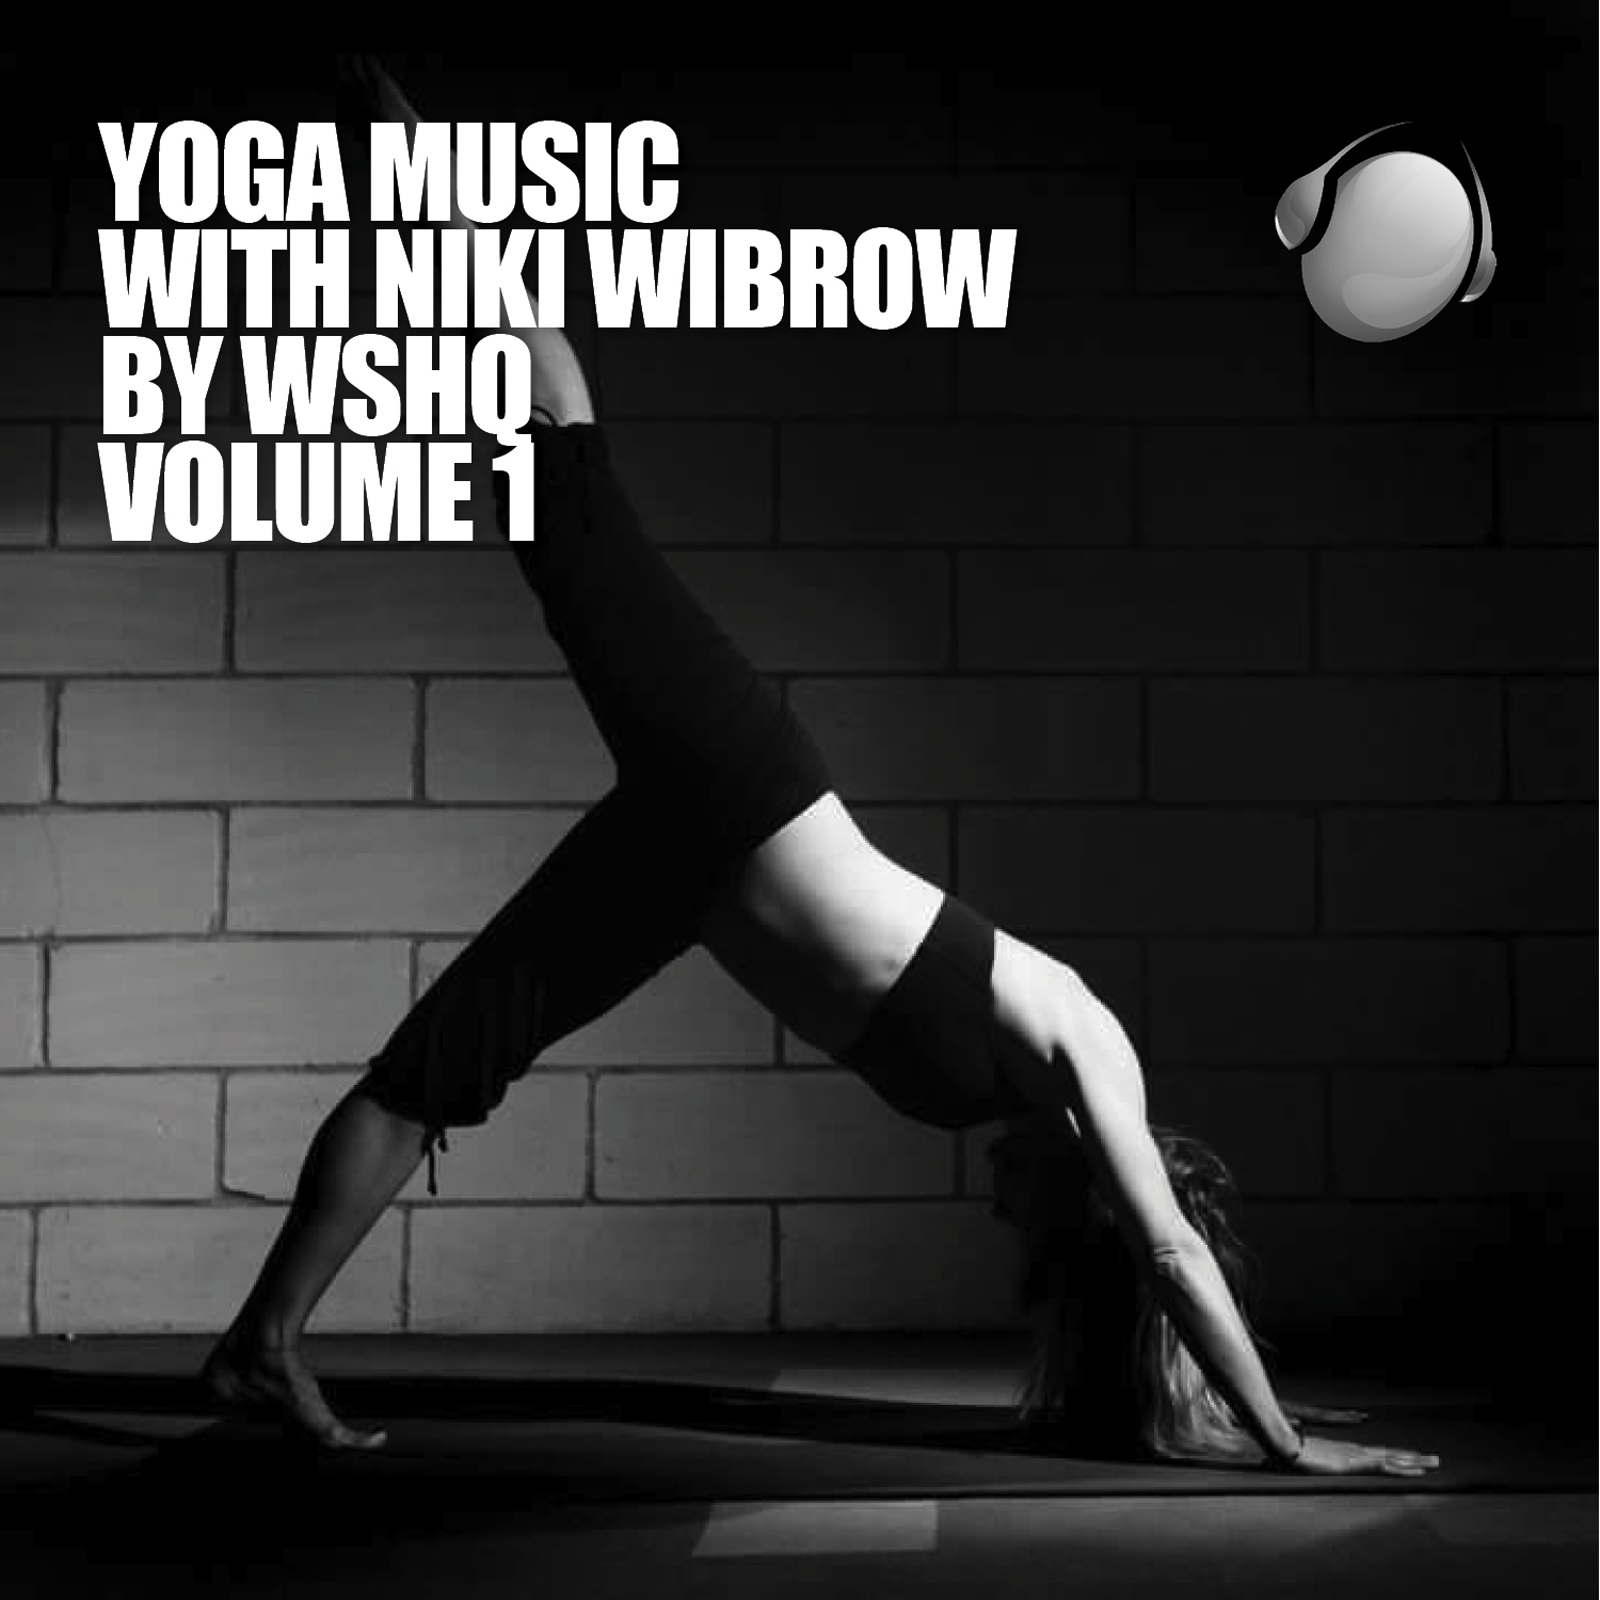 yoga music with niki wibrow